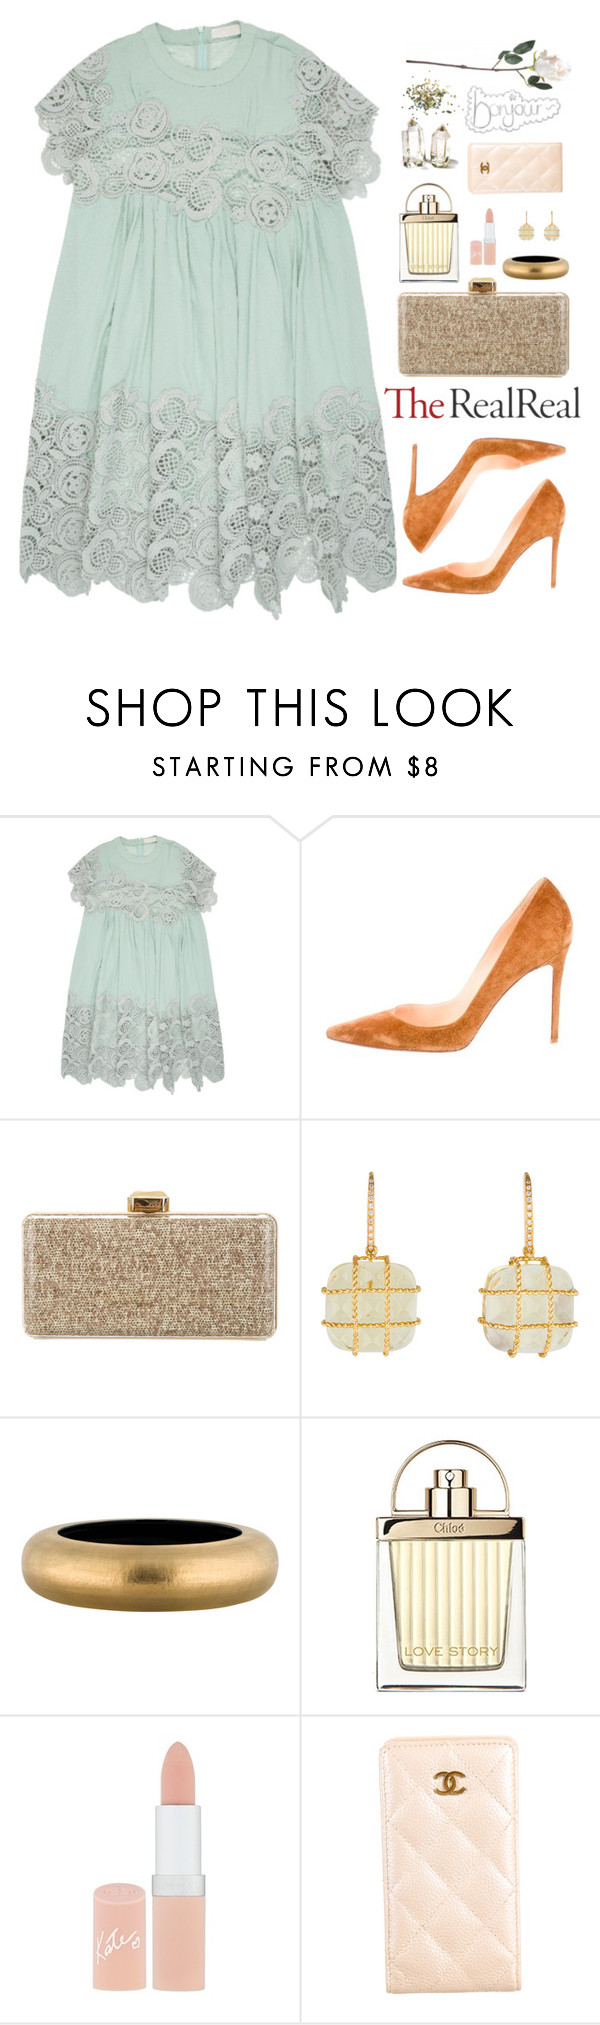 """""""Untitled #352 // Fall Style With The RealReal: Contest Entry"""" by pinkandgoldsparkles ❤ liked on Polyvore featuring Chloé, Christian Louboutin, Oscar de la Renta, Madstone, Alexis Bittar, Rimmel, Chanel and Topshop"""